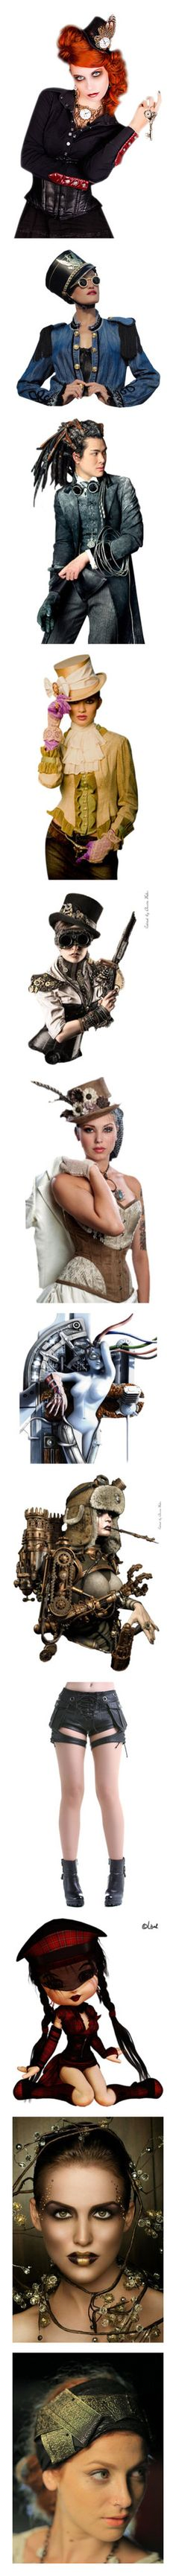 """Steampunk_People and Doll Parts_closed (almost)"" by auntiehelen ❤ liked on Polyvore featuring steampunk, doll parts, dolls, femme, men, people, filler, models, person and doll part"